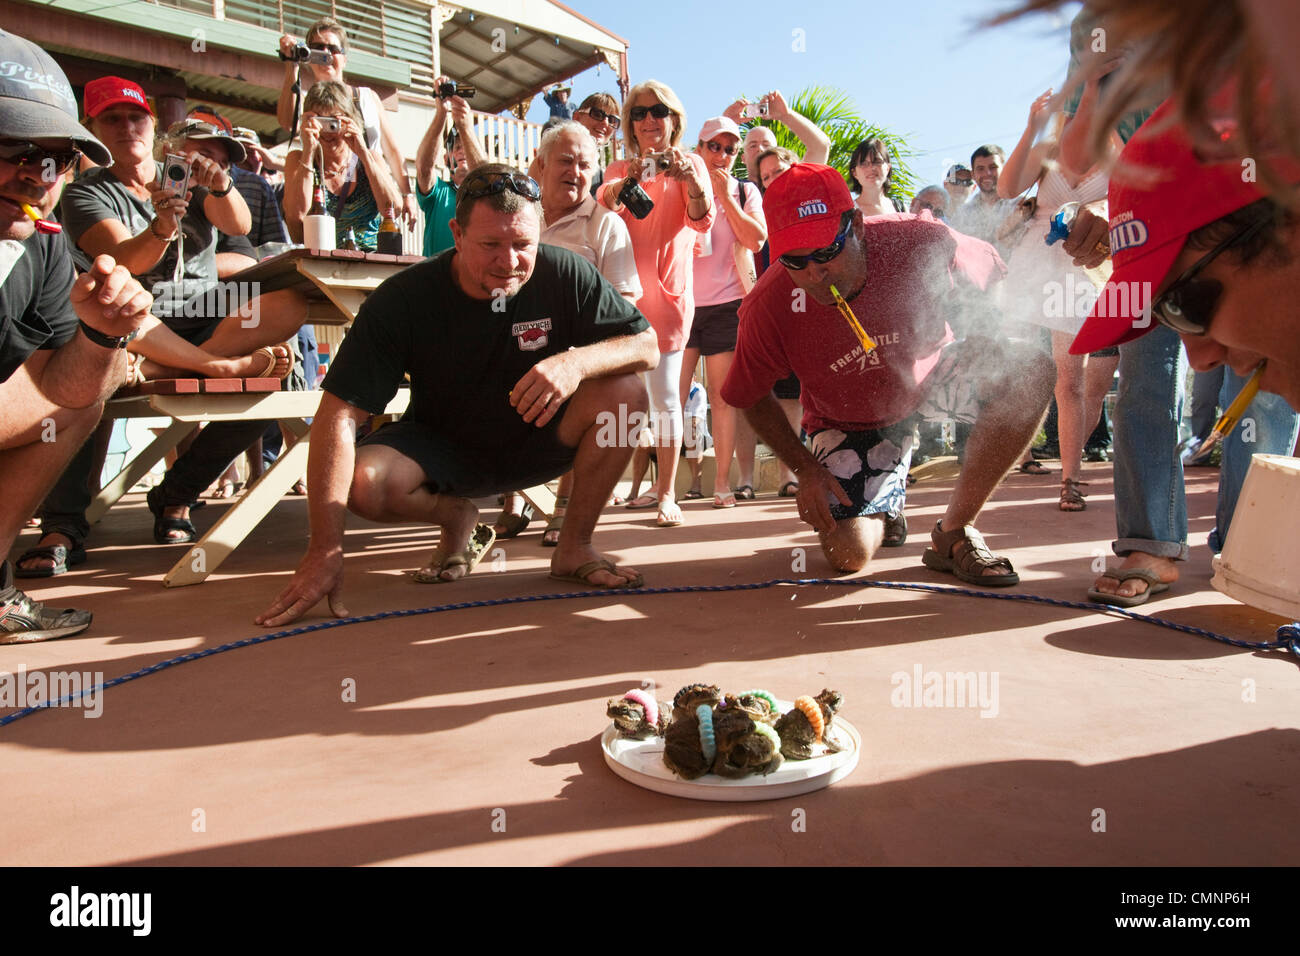 Cane toad racing during the Cooktown Discovery Festival. Cooktown, Queensland, Australia - Stock Image